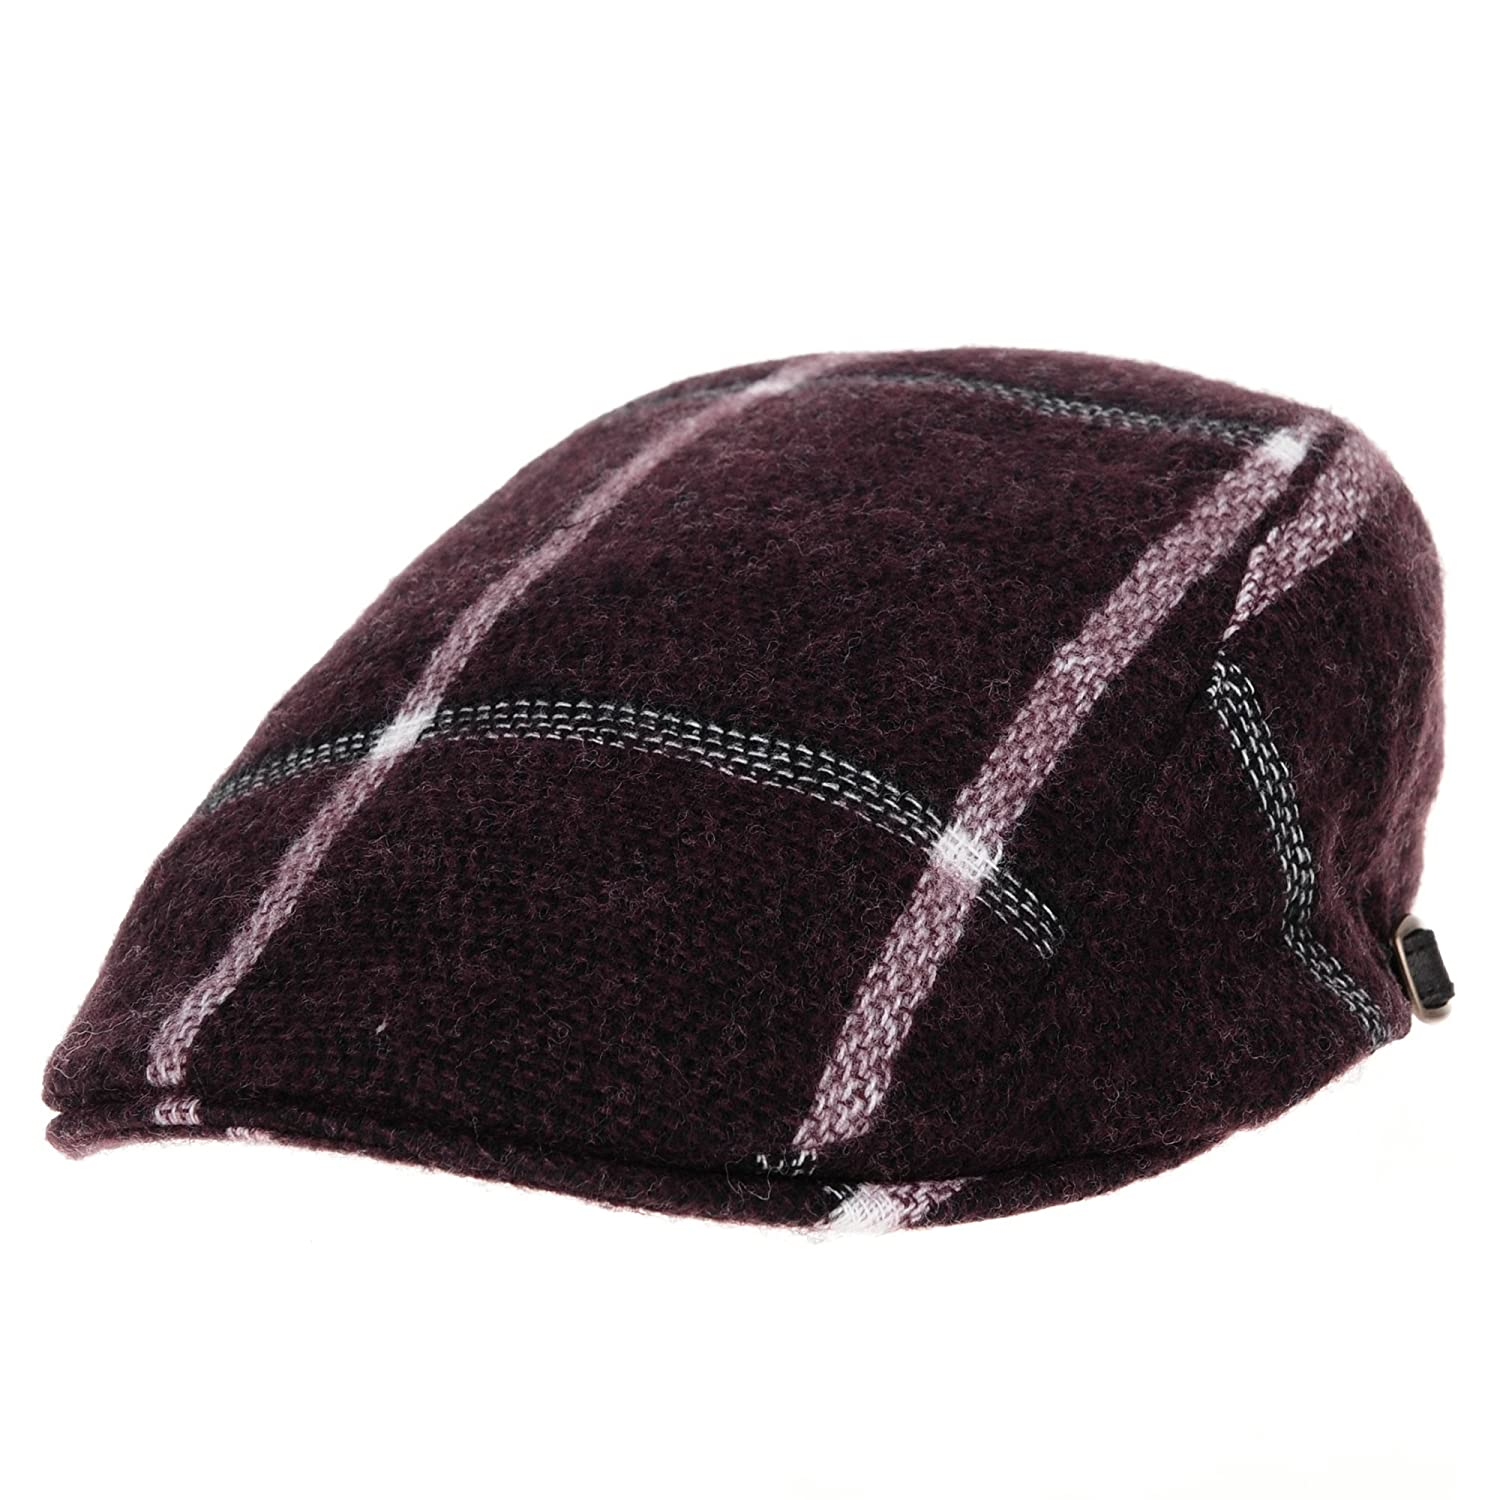 WITHMOONS Flat Cap Tattersall Plaid Check Soft Warm Rayon Ivy Hat LD3409